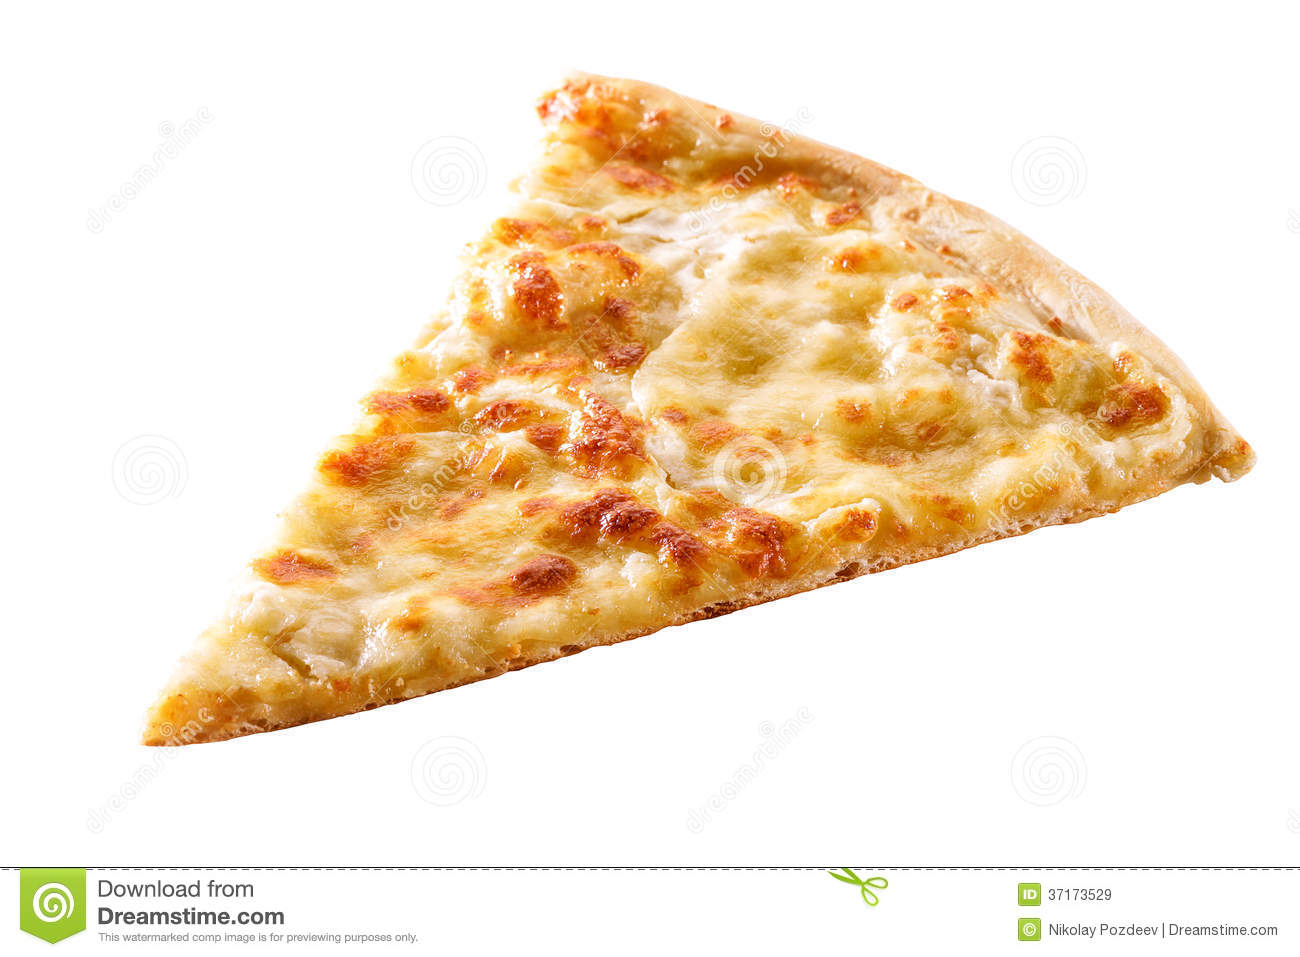 79+ Cheese Pizza Clipart.